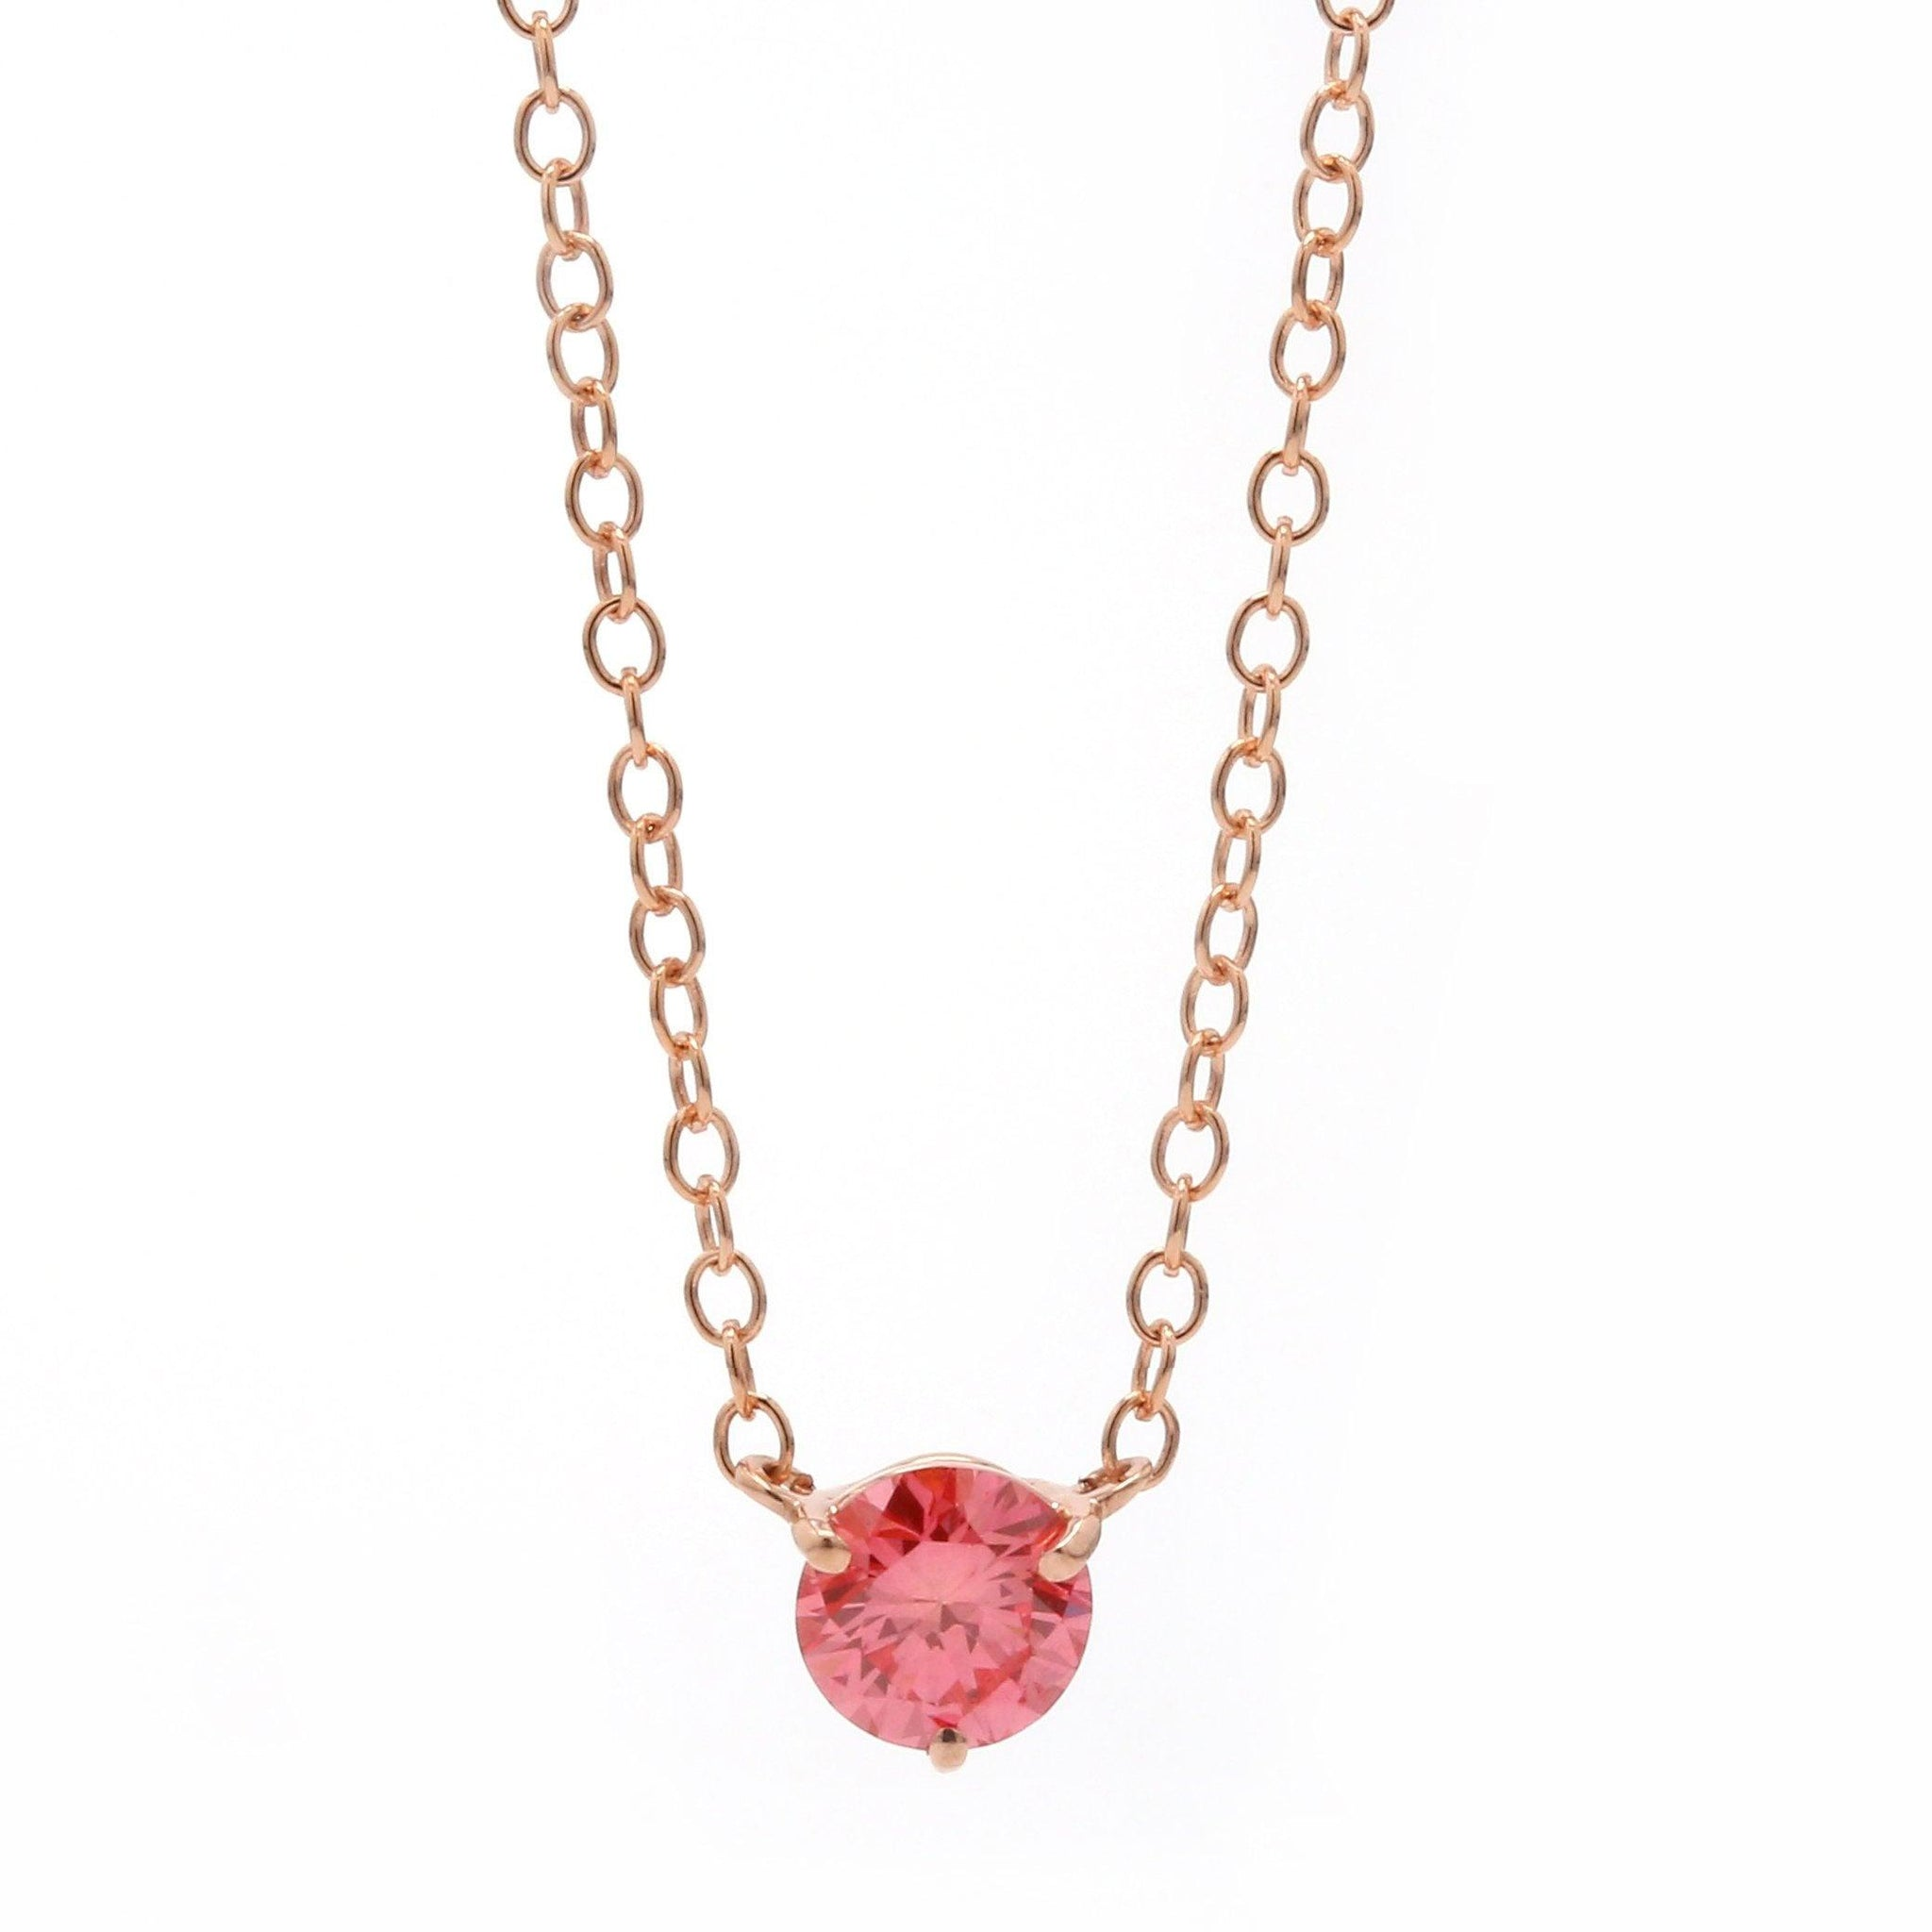 1/3 Ct. Pink Lab-Grown Diamond Solitaire 14K Rose Gold Necklace